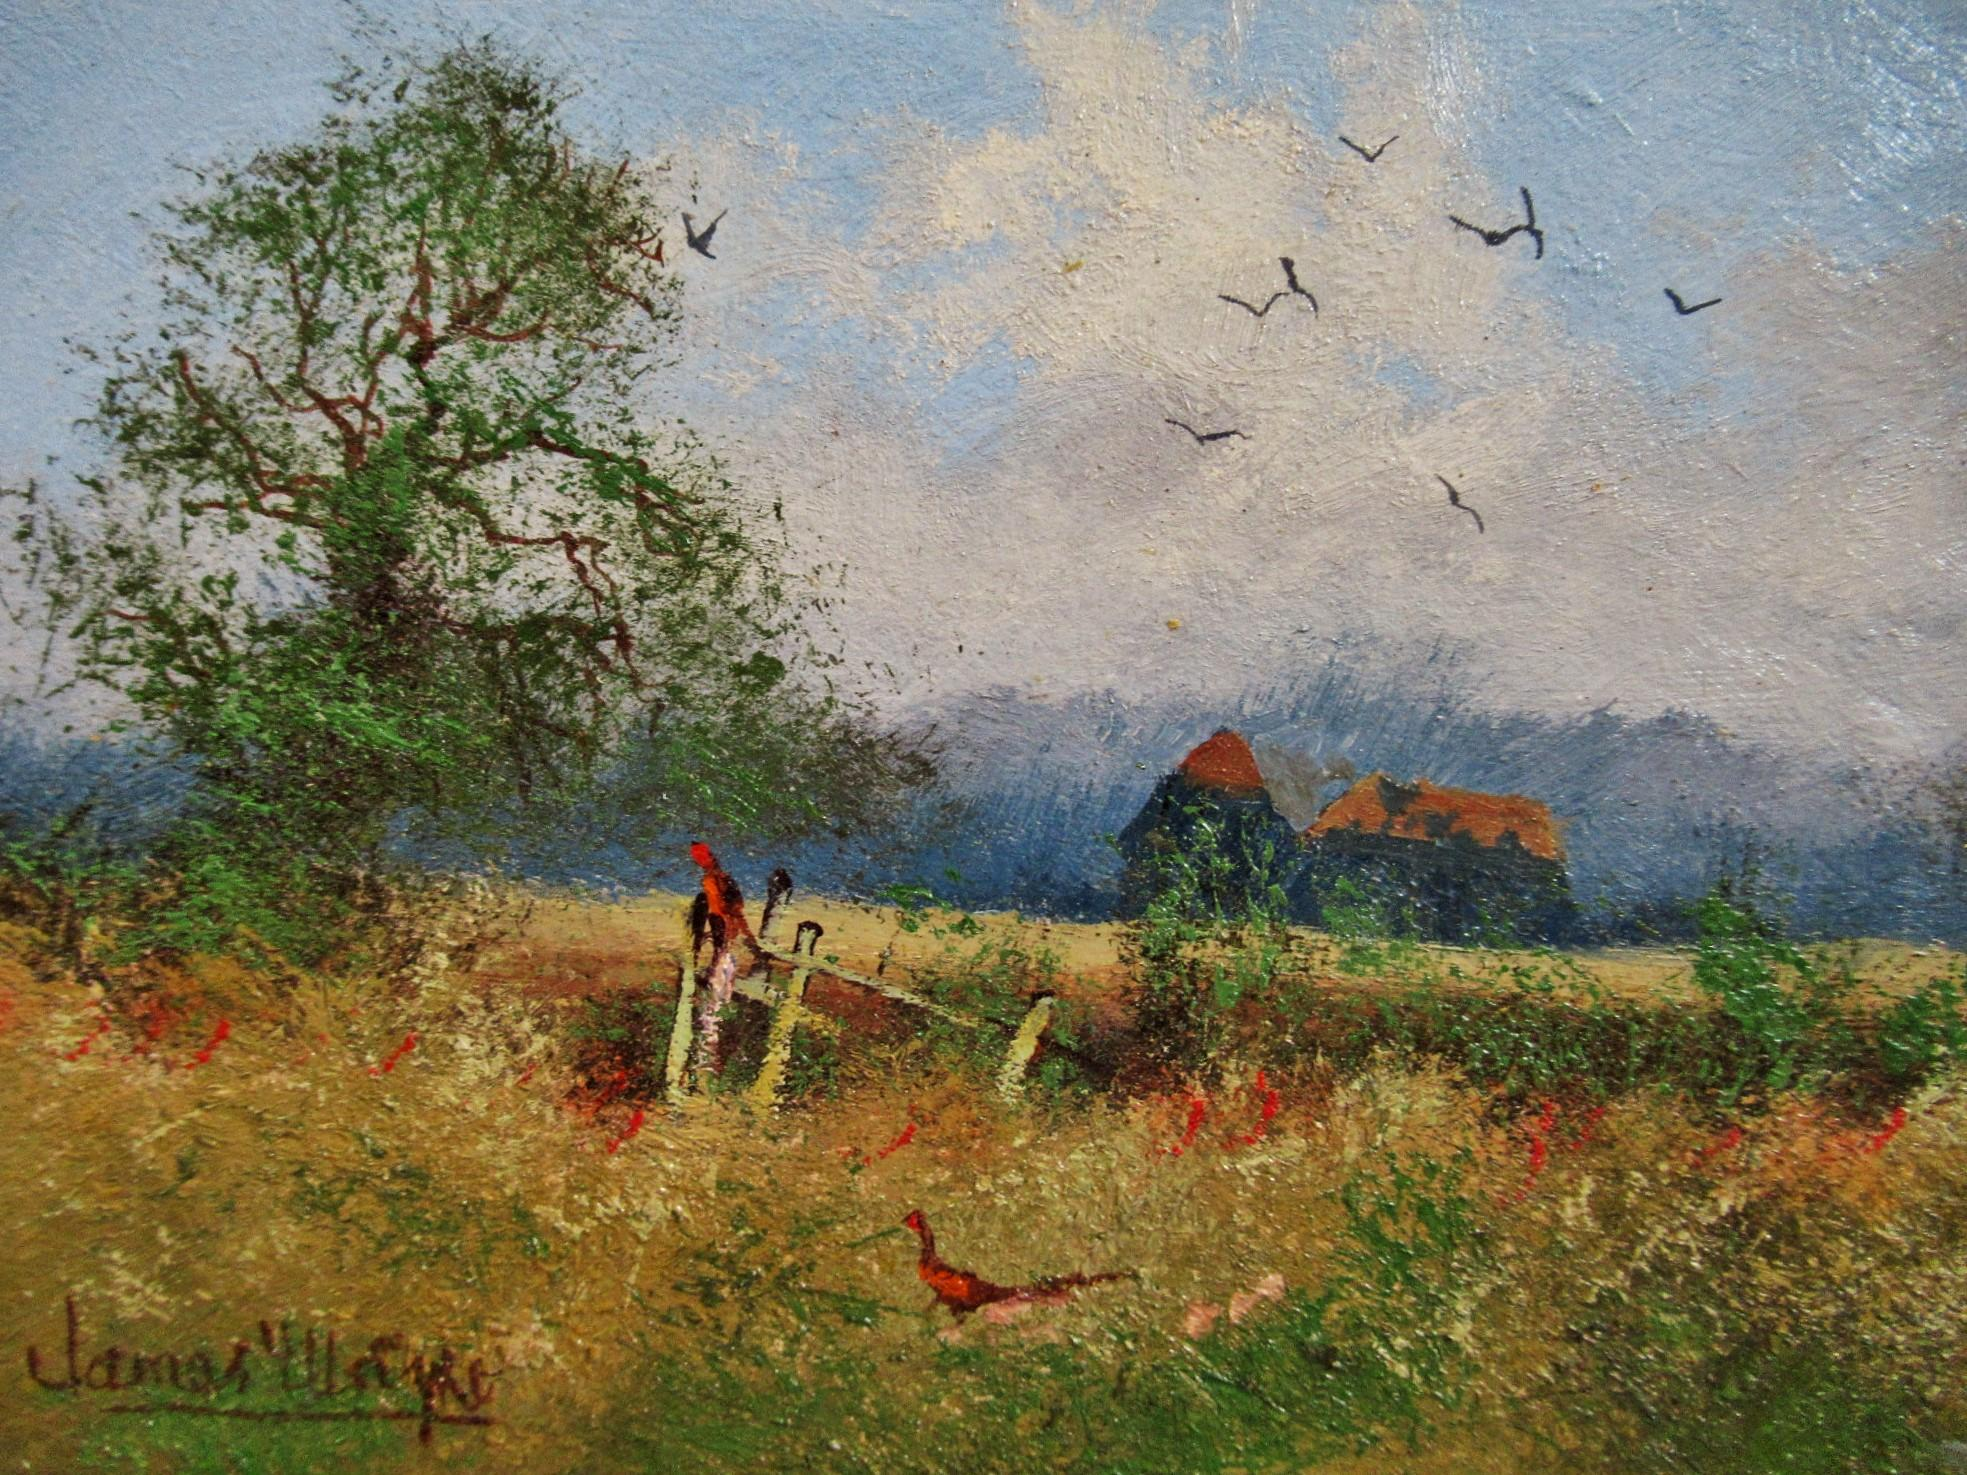 PHEASANT_IN_THE_FIELD_JAMES_WRIGHT_[Fine]